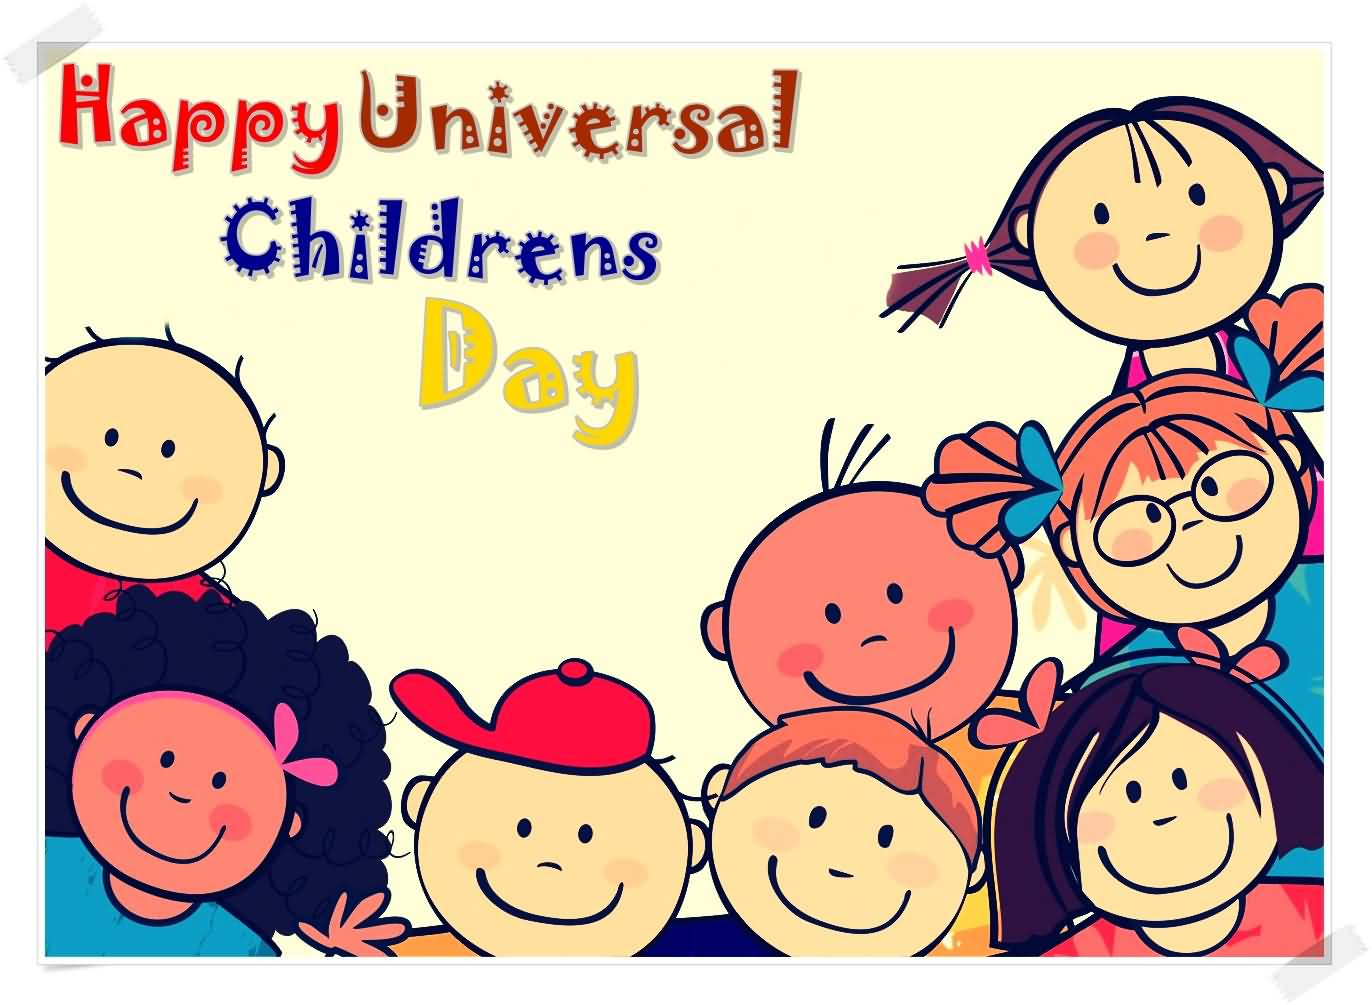 happy universal childrens day cartoon picture - Cartoon Image Of Children